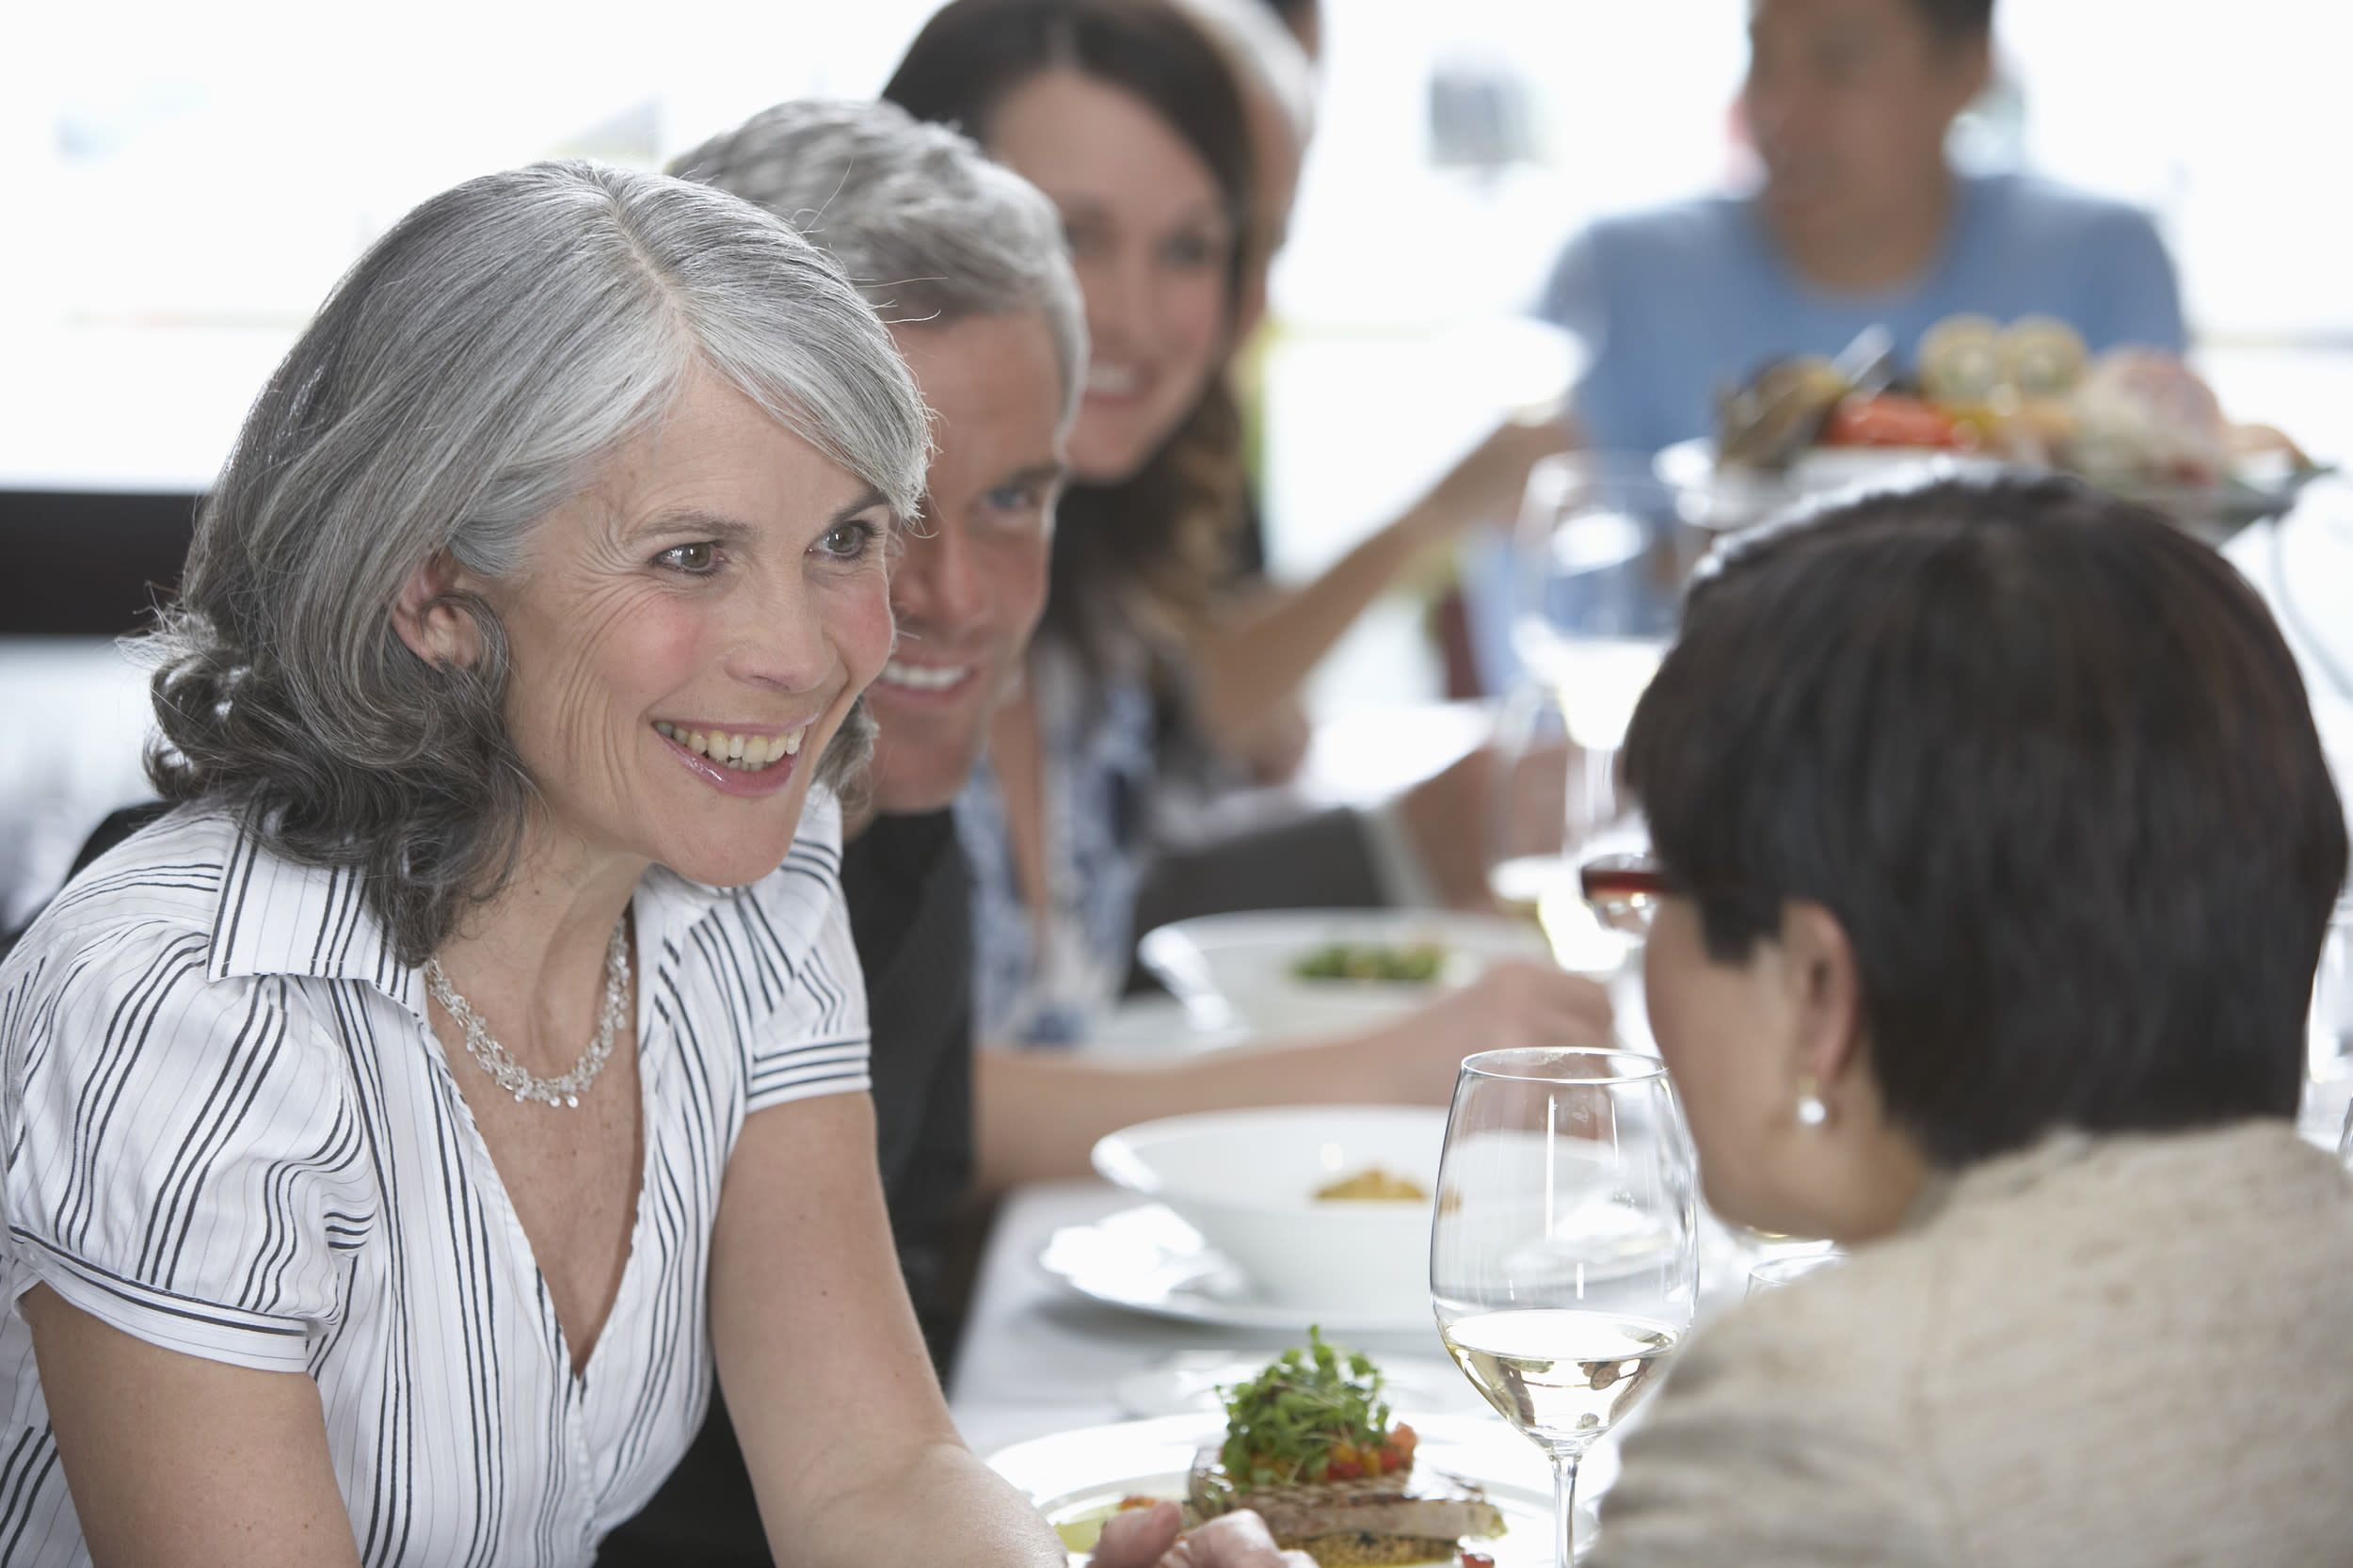 <p>Research from Senior Railcard found that retirees eat out an average of three times a month. However, one in ten do so more than twice a week, and one in three people said that one of the first things they did when they retired was to go out for lunch with their friends.</p>  <p>Of course, just because retirees want to enjoy themselves, it doesn't mean they are happy to throw money away. The vast majority are keen to eat at lunchtimes, when a fixed lunch menu tends to be cheaper, and canny retirees are skilled at tracking down pensioner special offers too.</p>